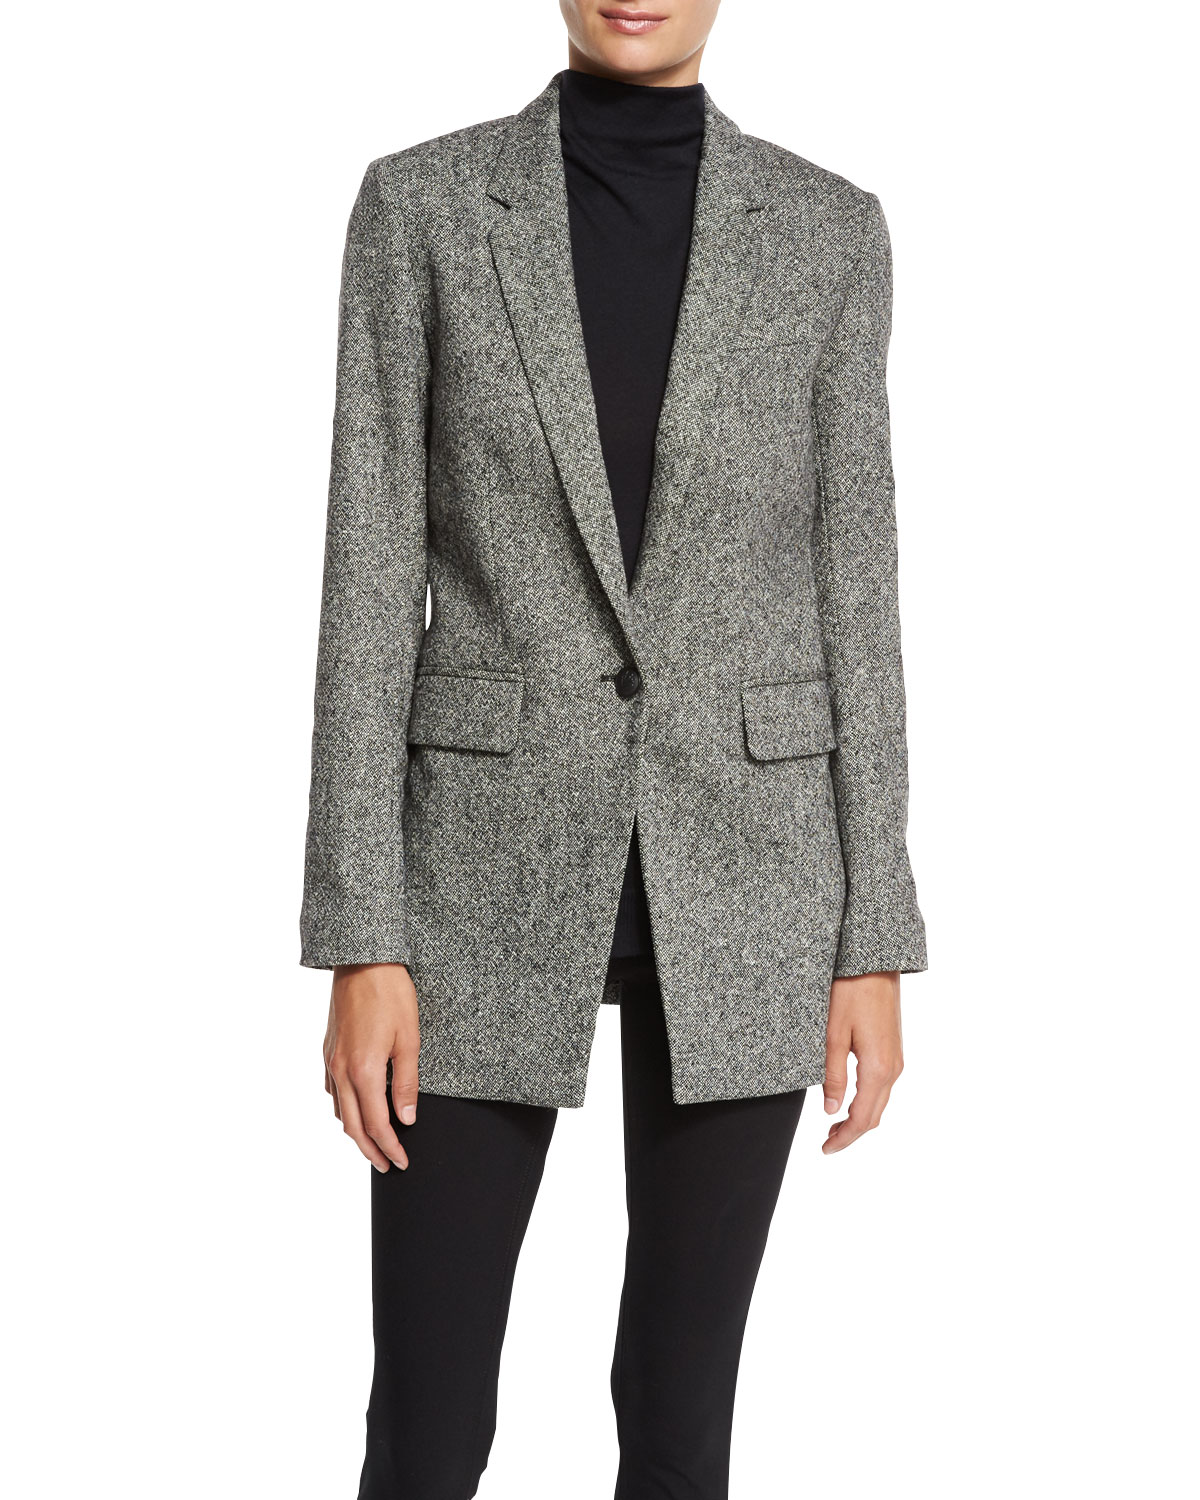 Rag & Bone Wool Herringbone Blazer Cut-Price IqKiXOhW